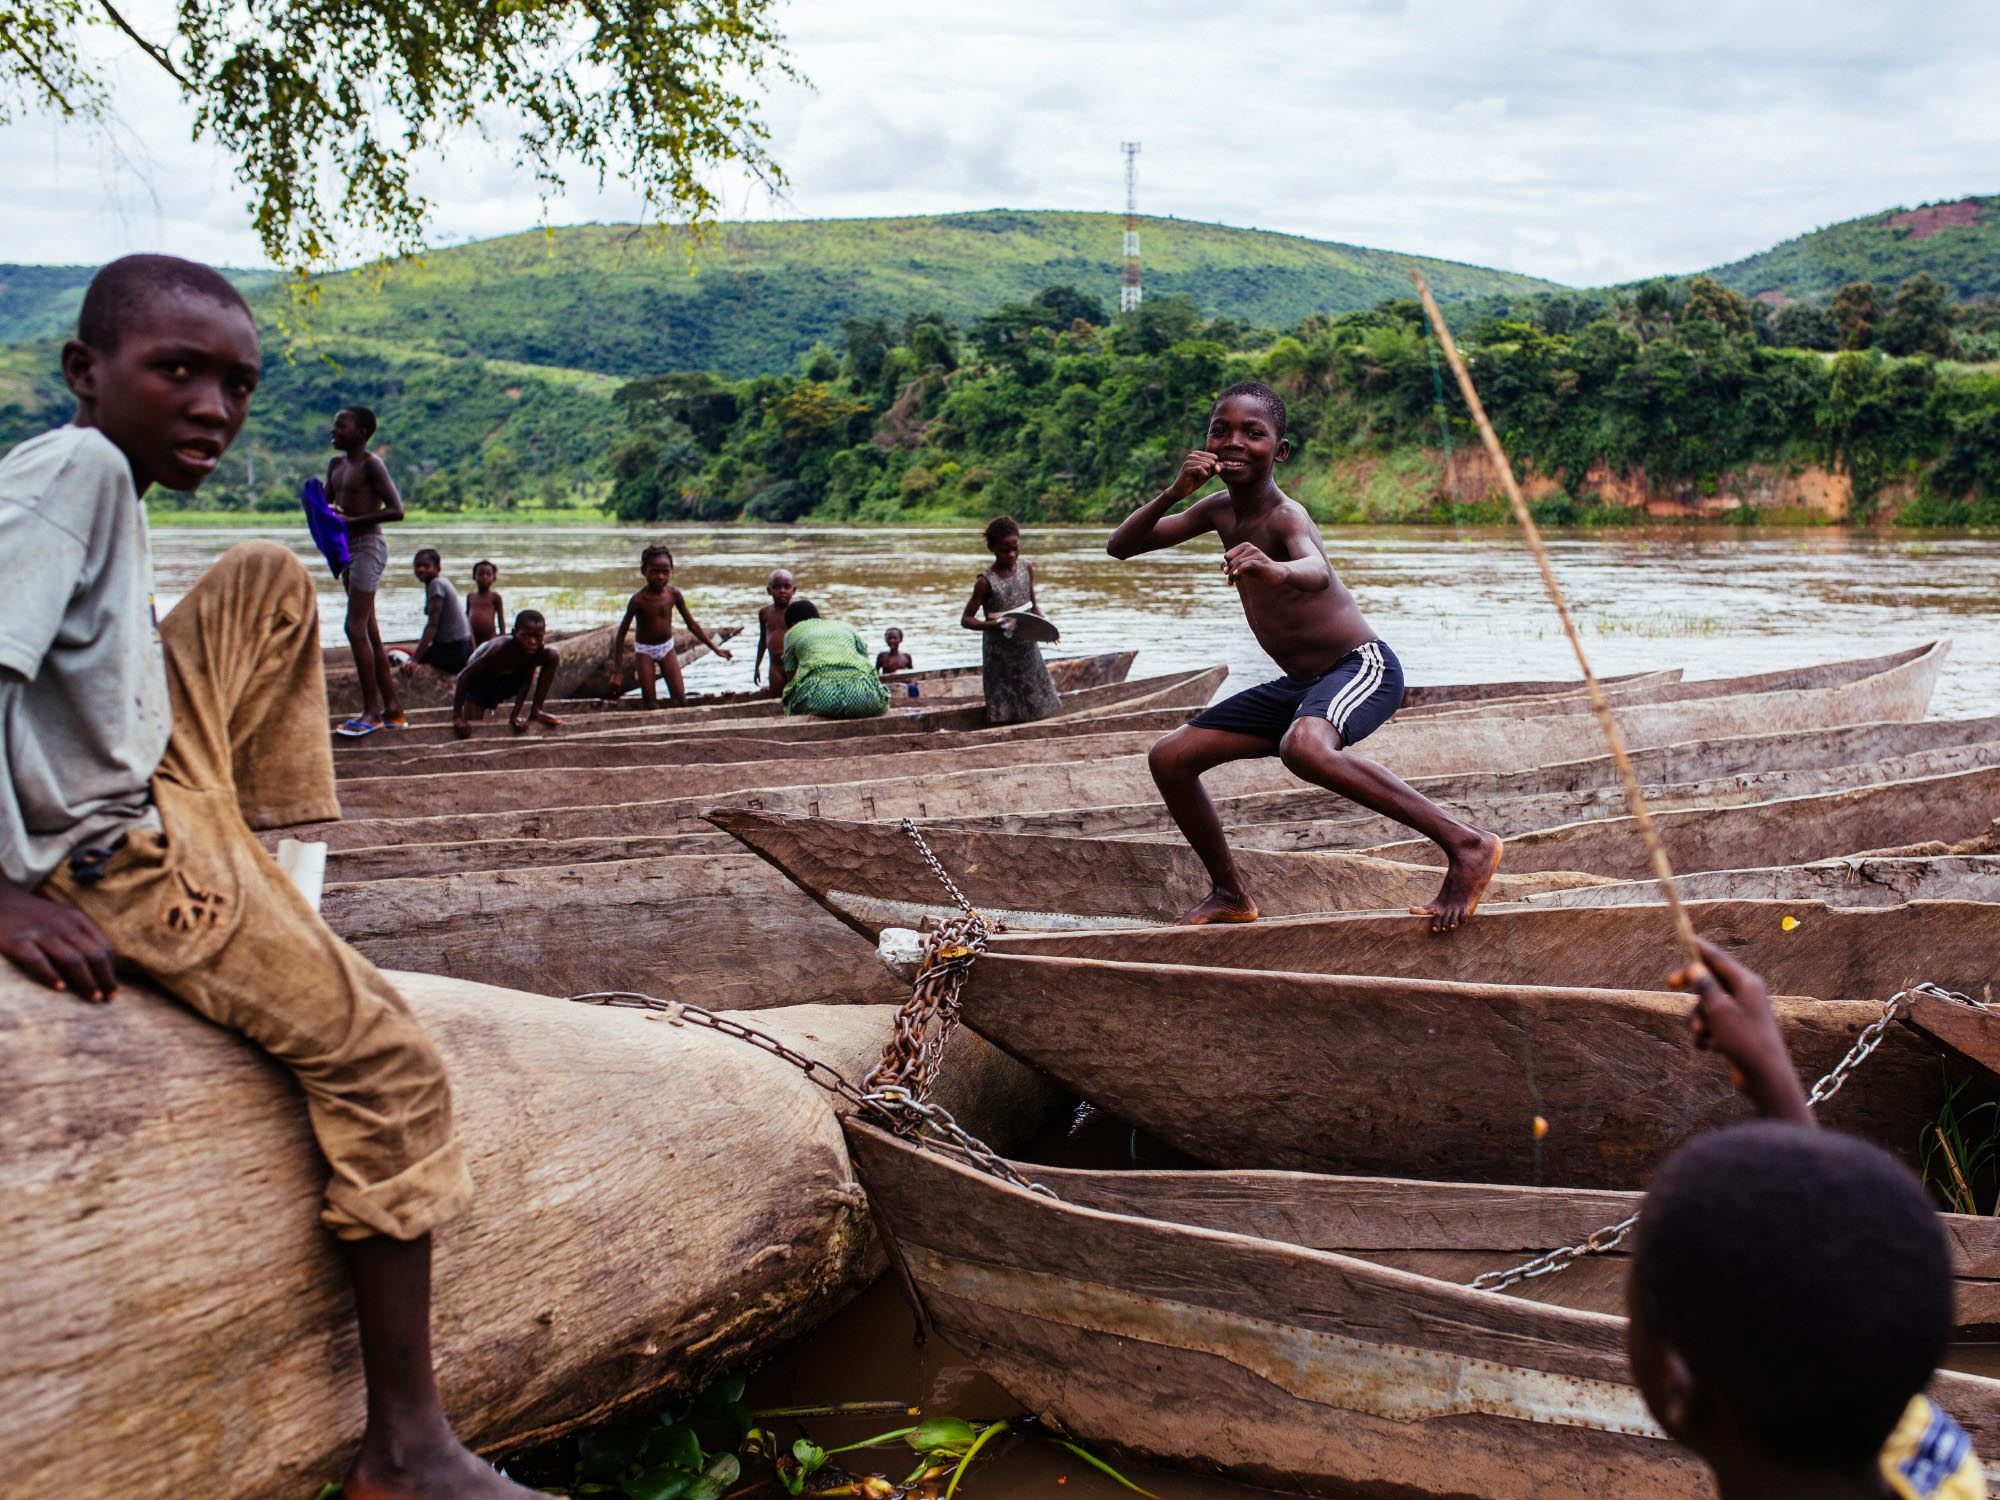 Kids playing on the banks of the Kenge River. Democratic Republic of Congo.